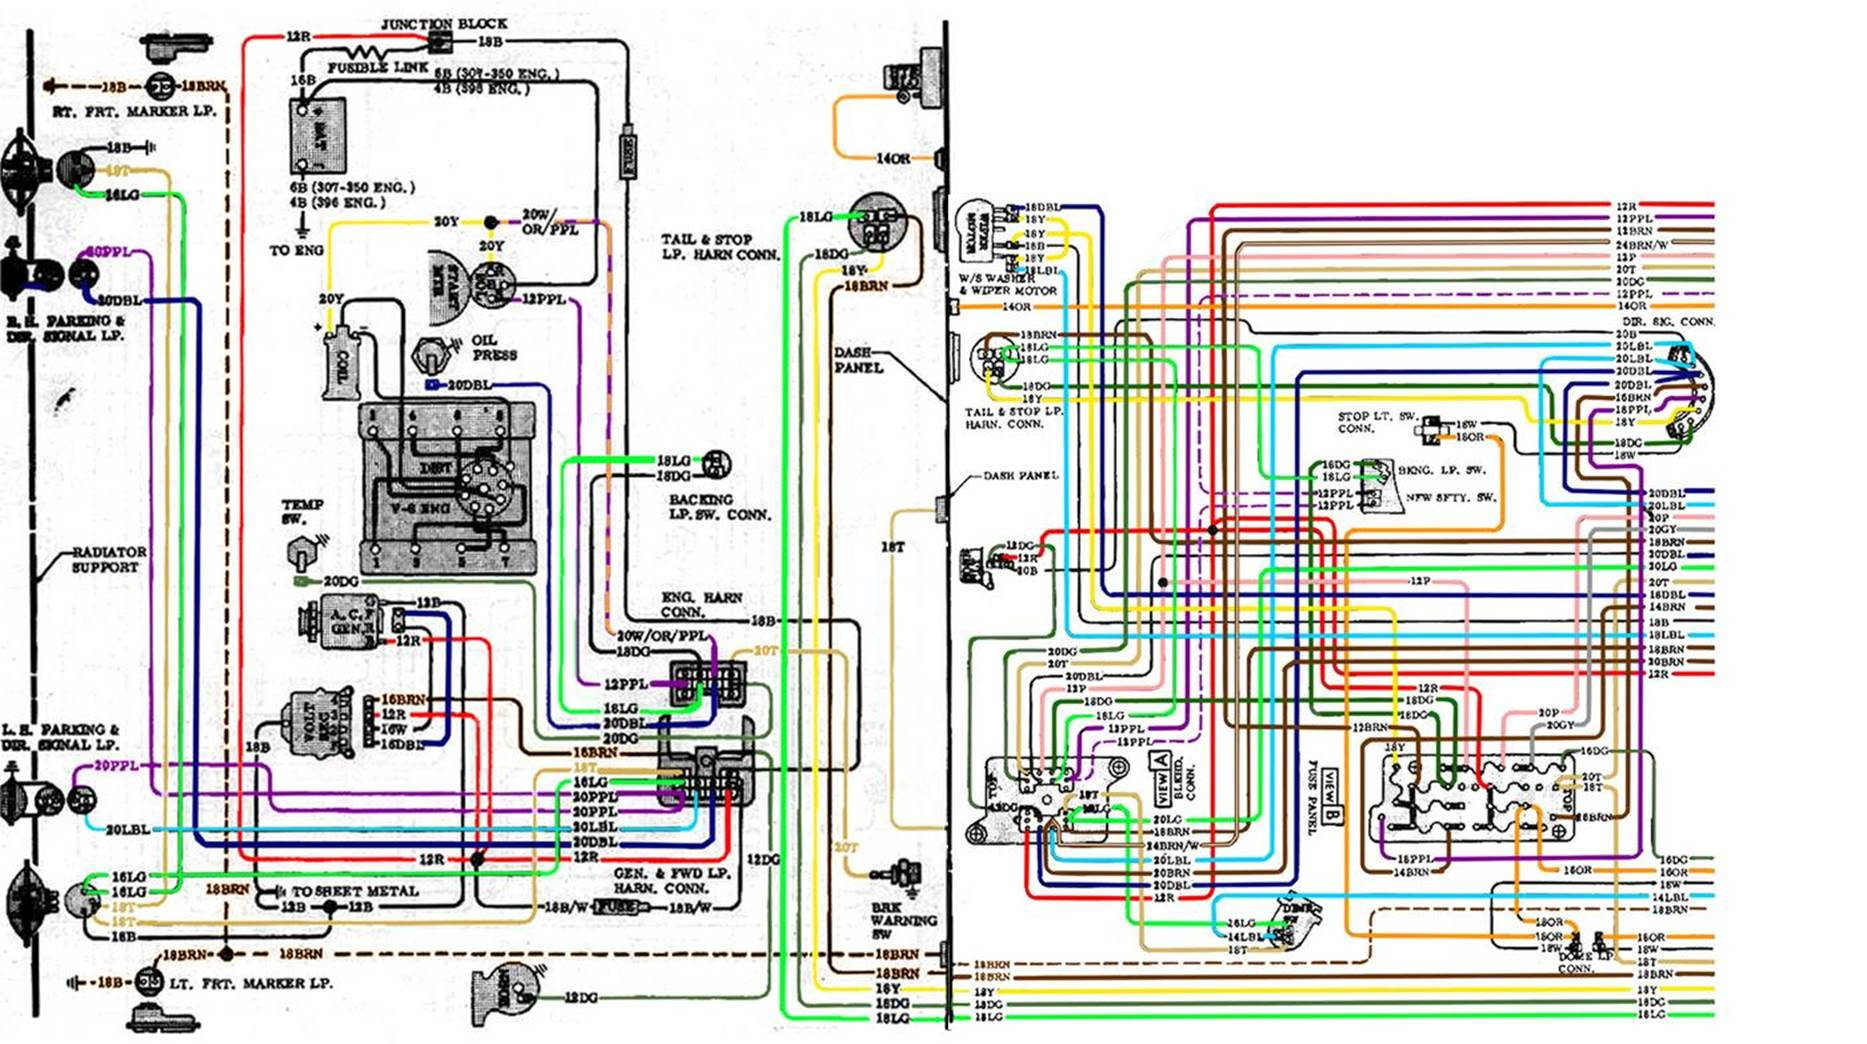 image002 67 72 chevy wiring diagram 1970 chevy c10 wiring harness at soozxer.org